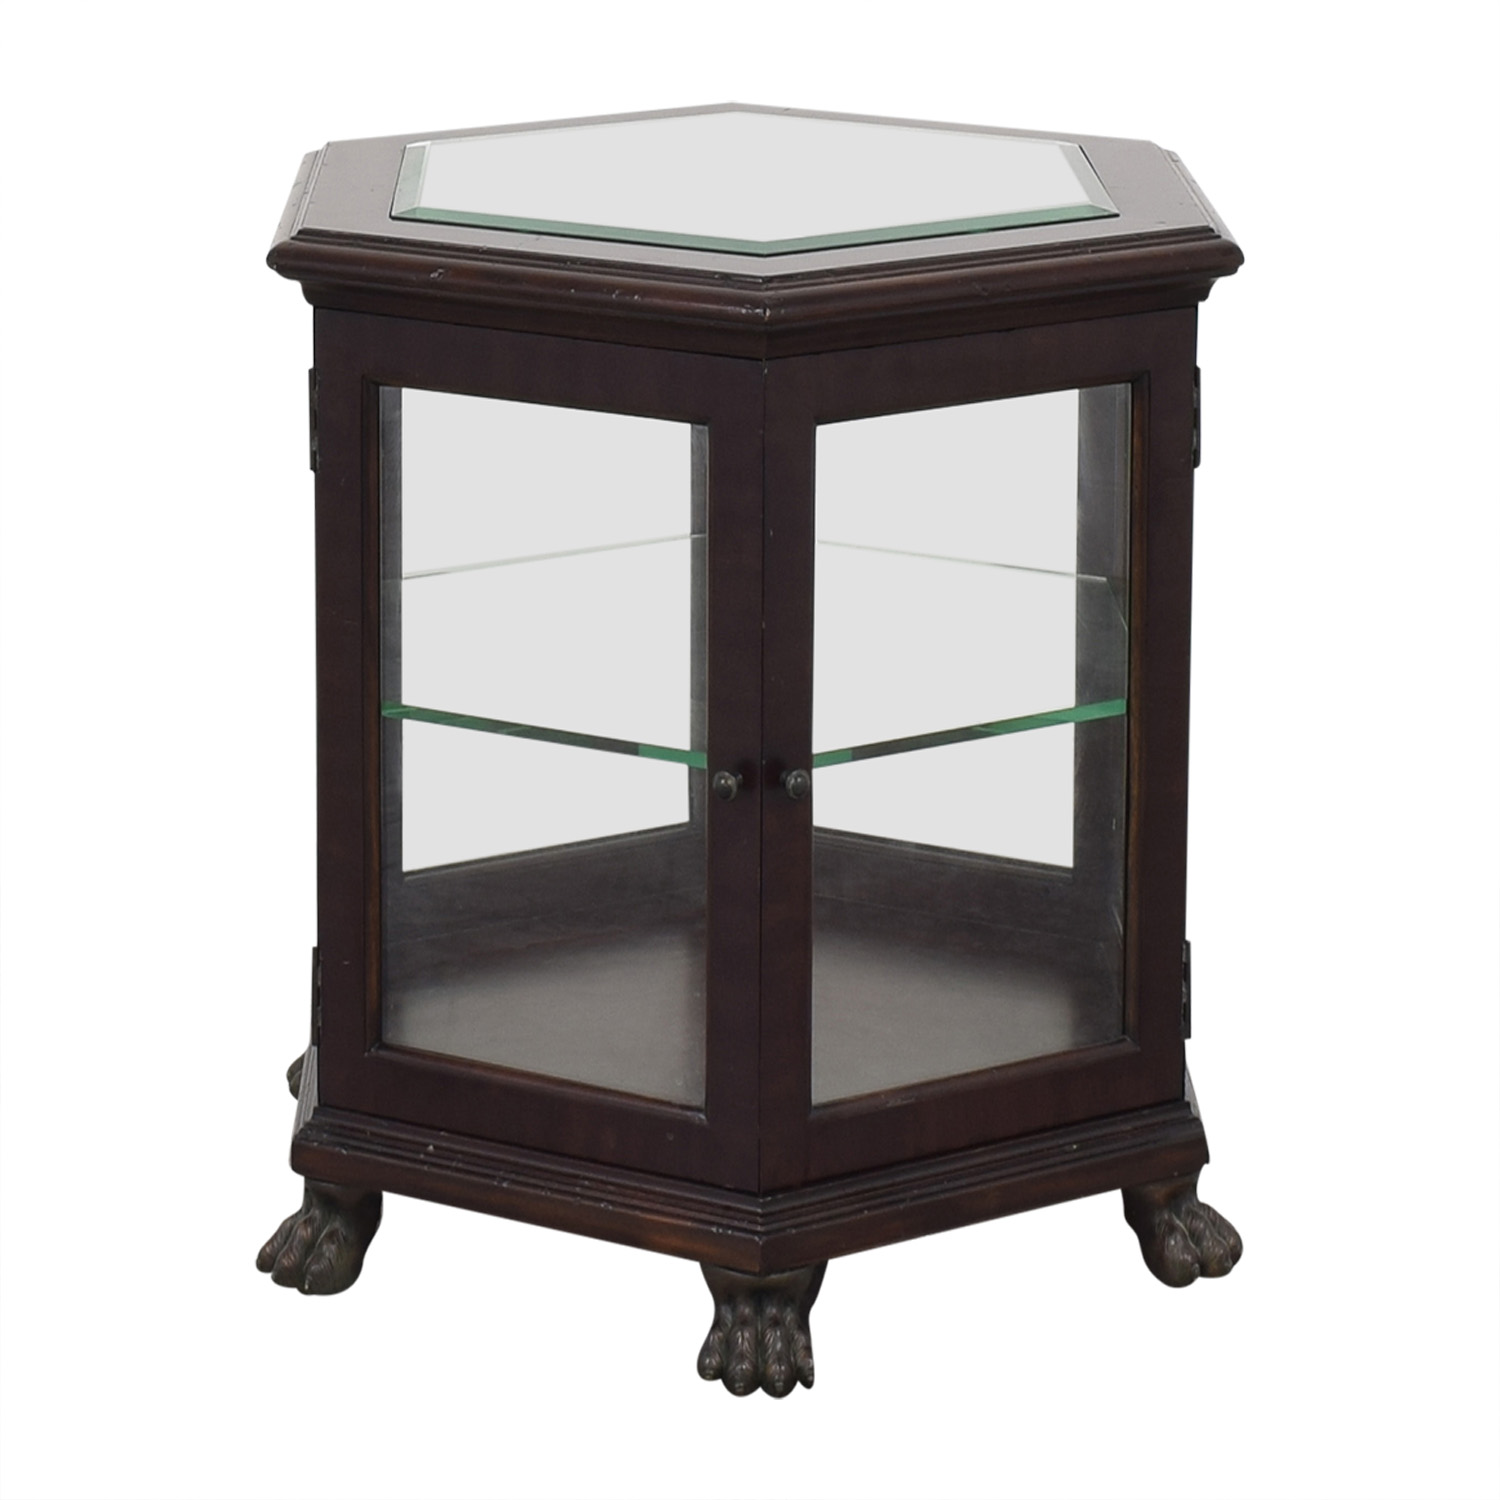 Thomasville Thomasville Hexagon End Table nyc